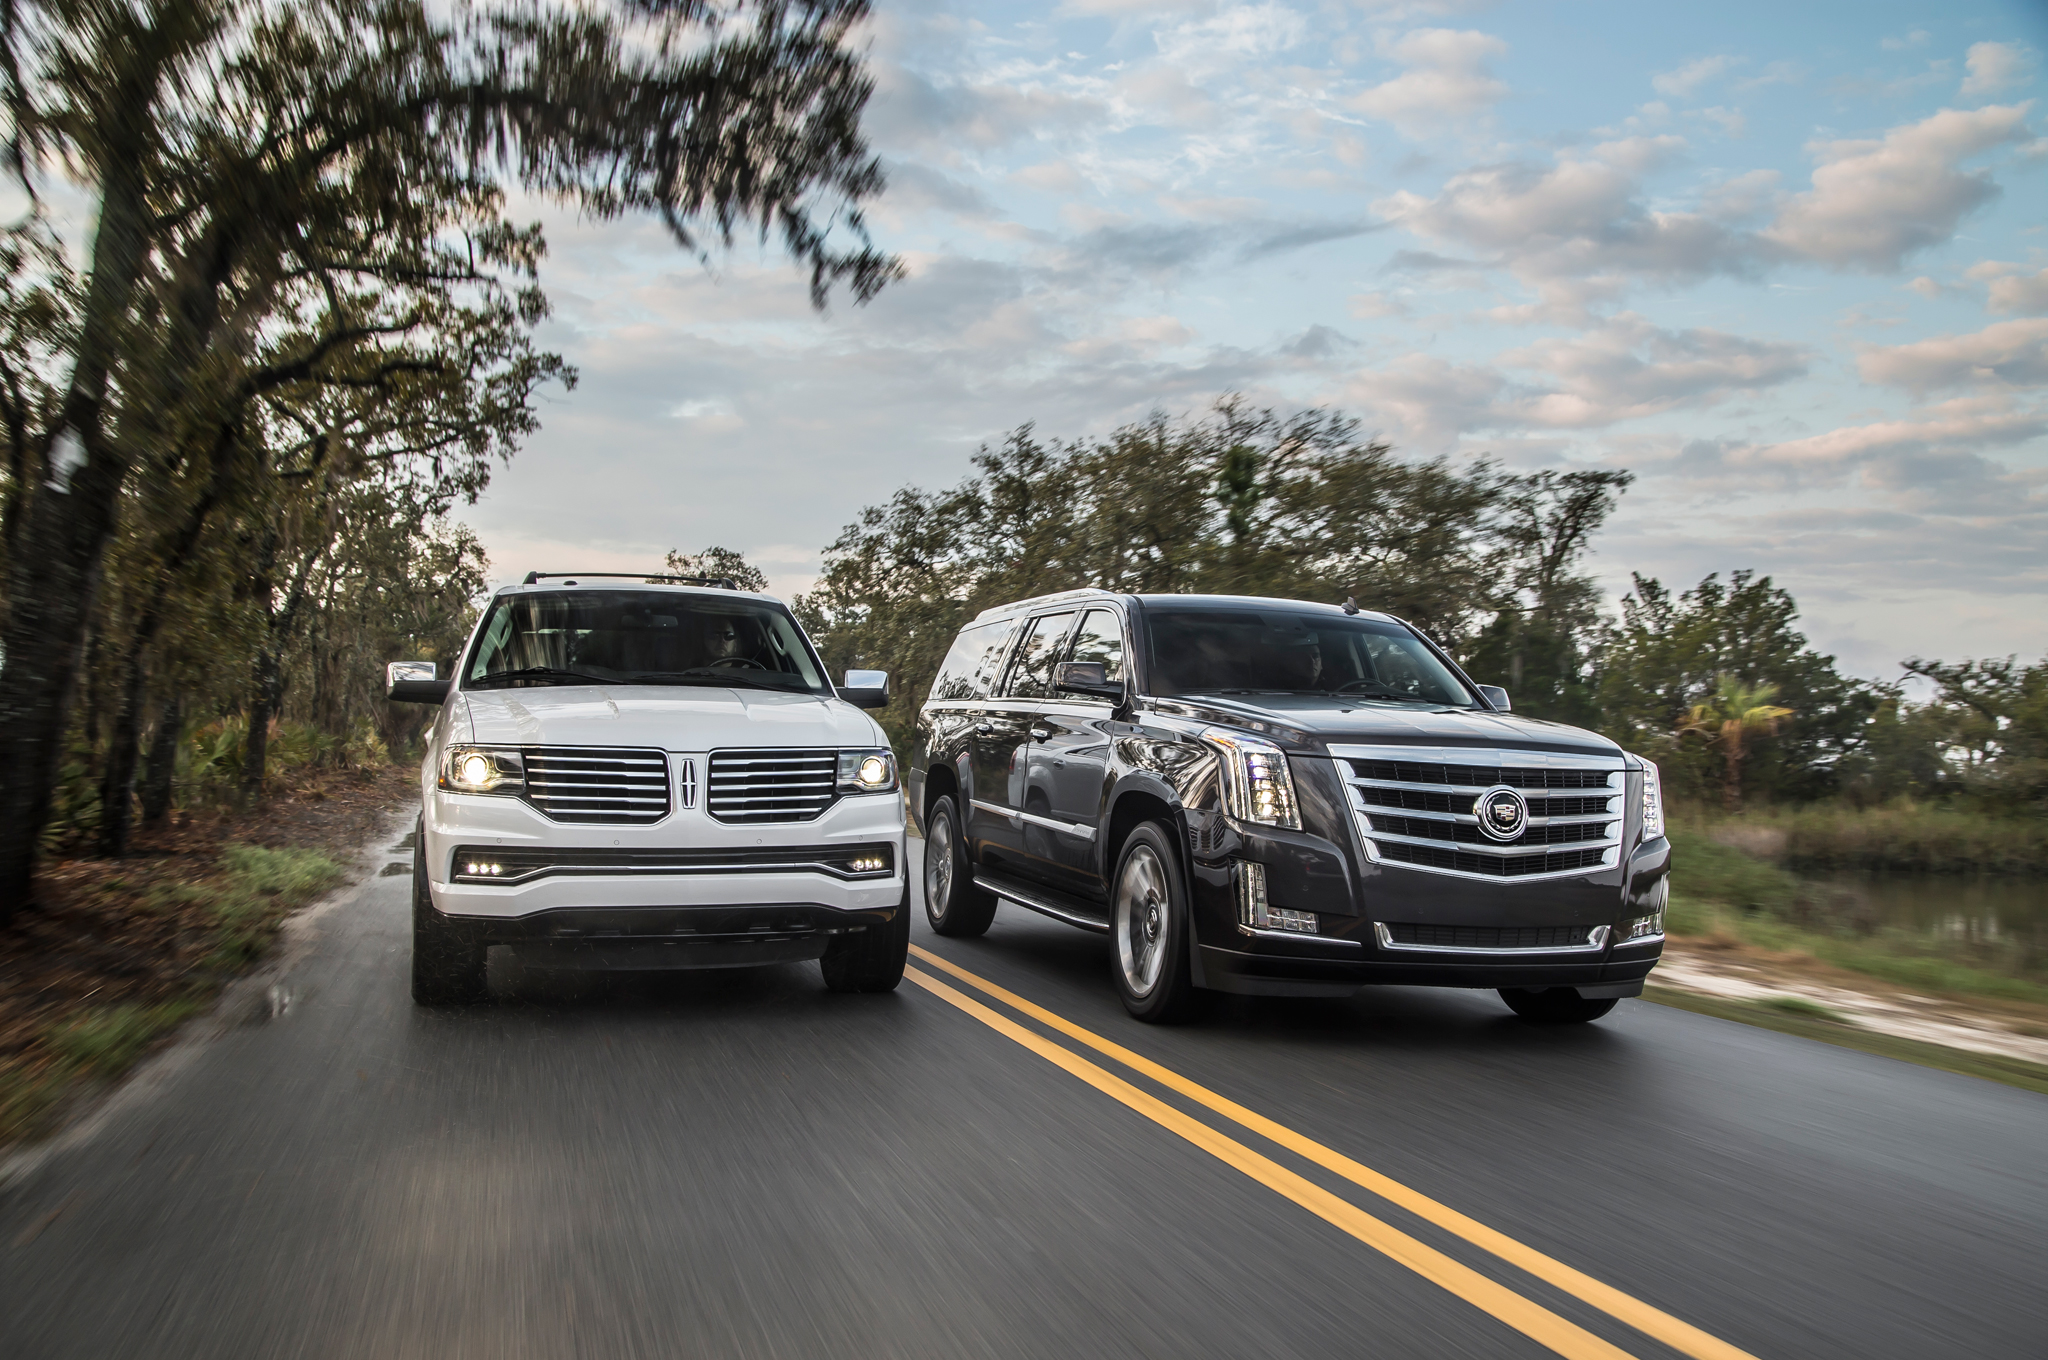 Poll: 2015 Lincoln Navigator Or 2015 Cadillac Escalade?